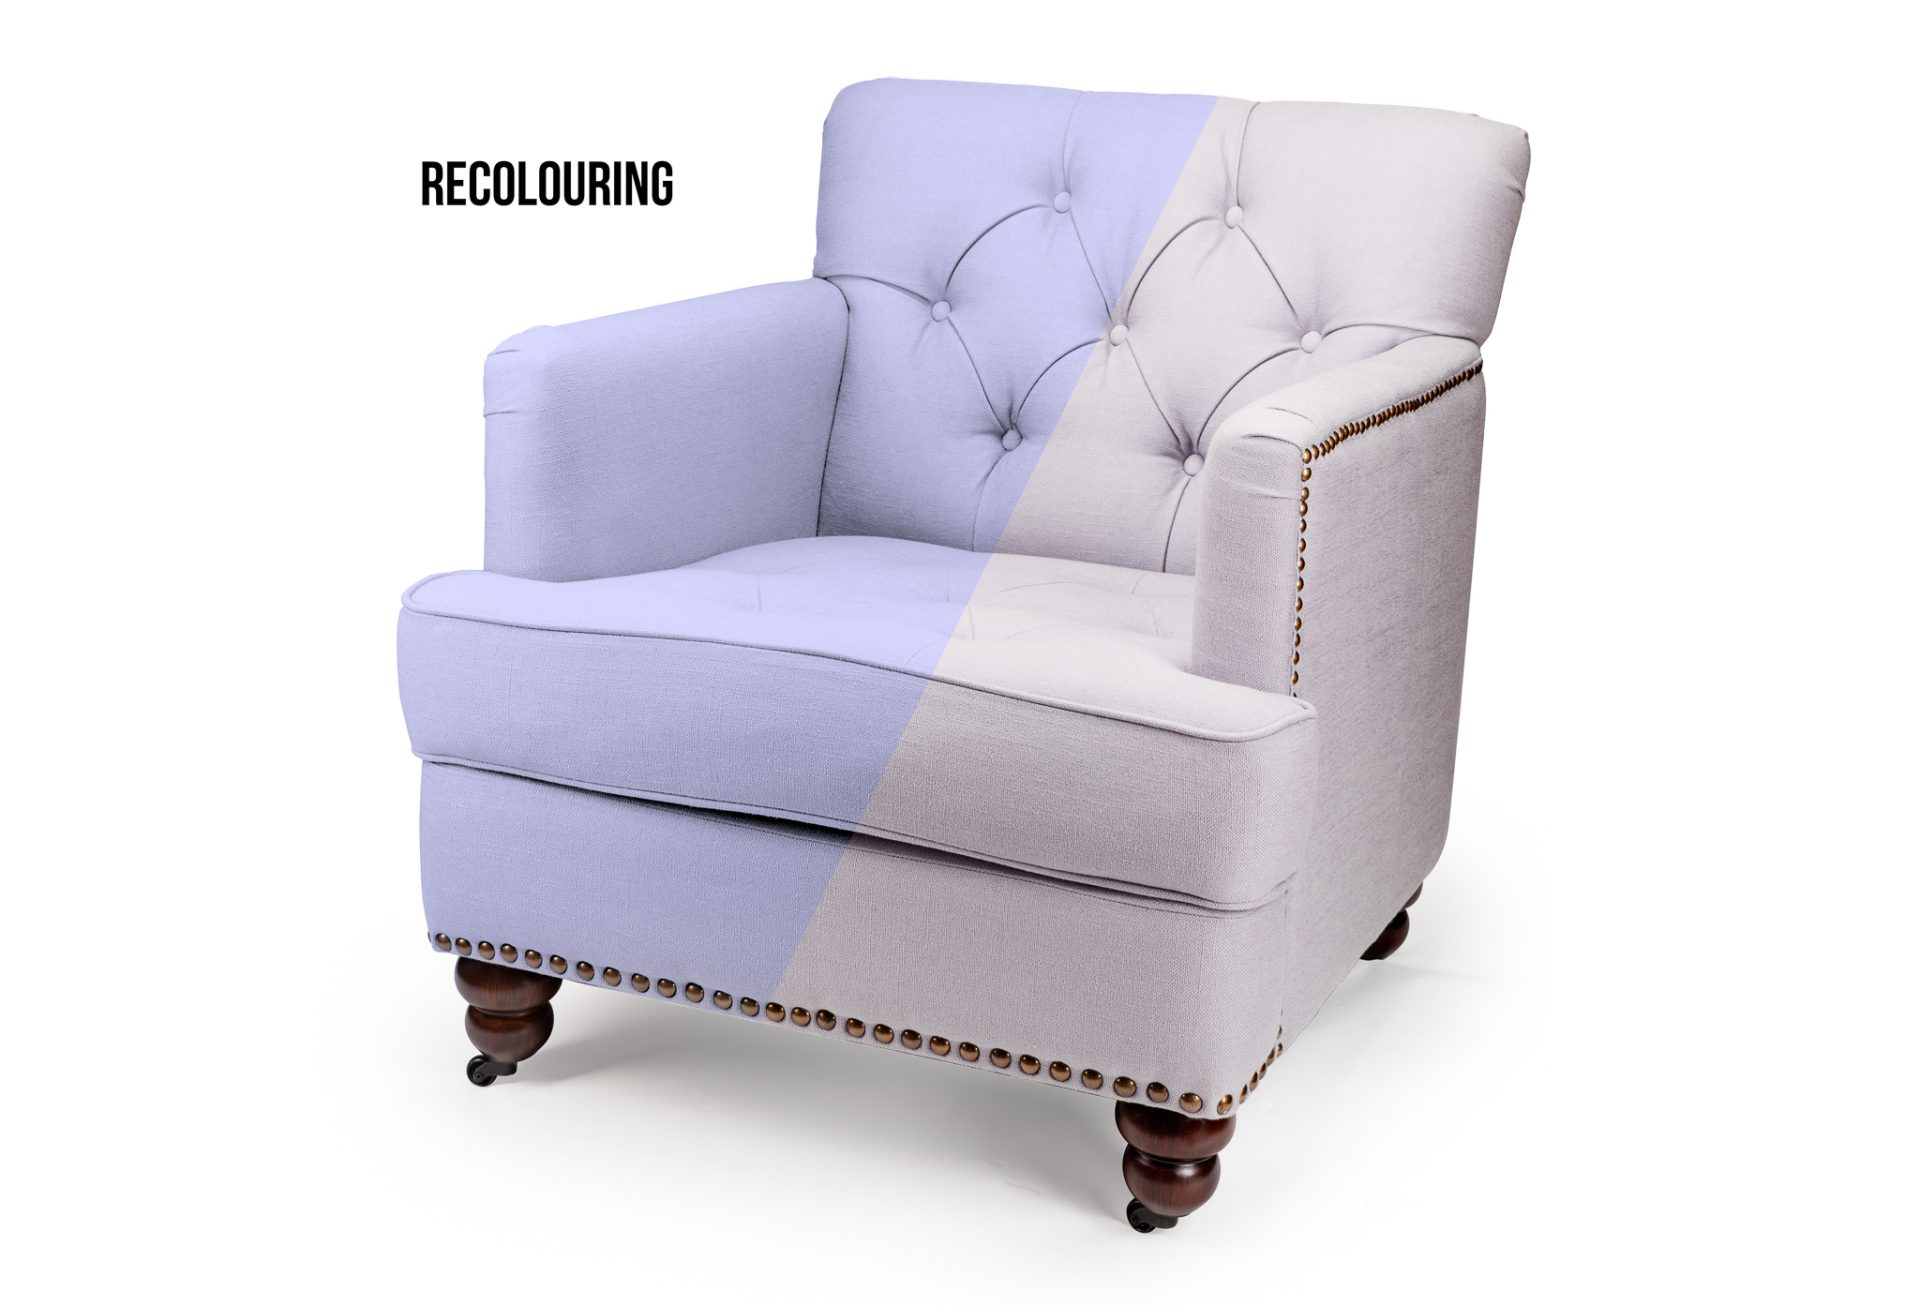 Upholstered chair showing two different colour options